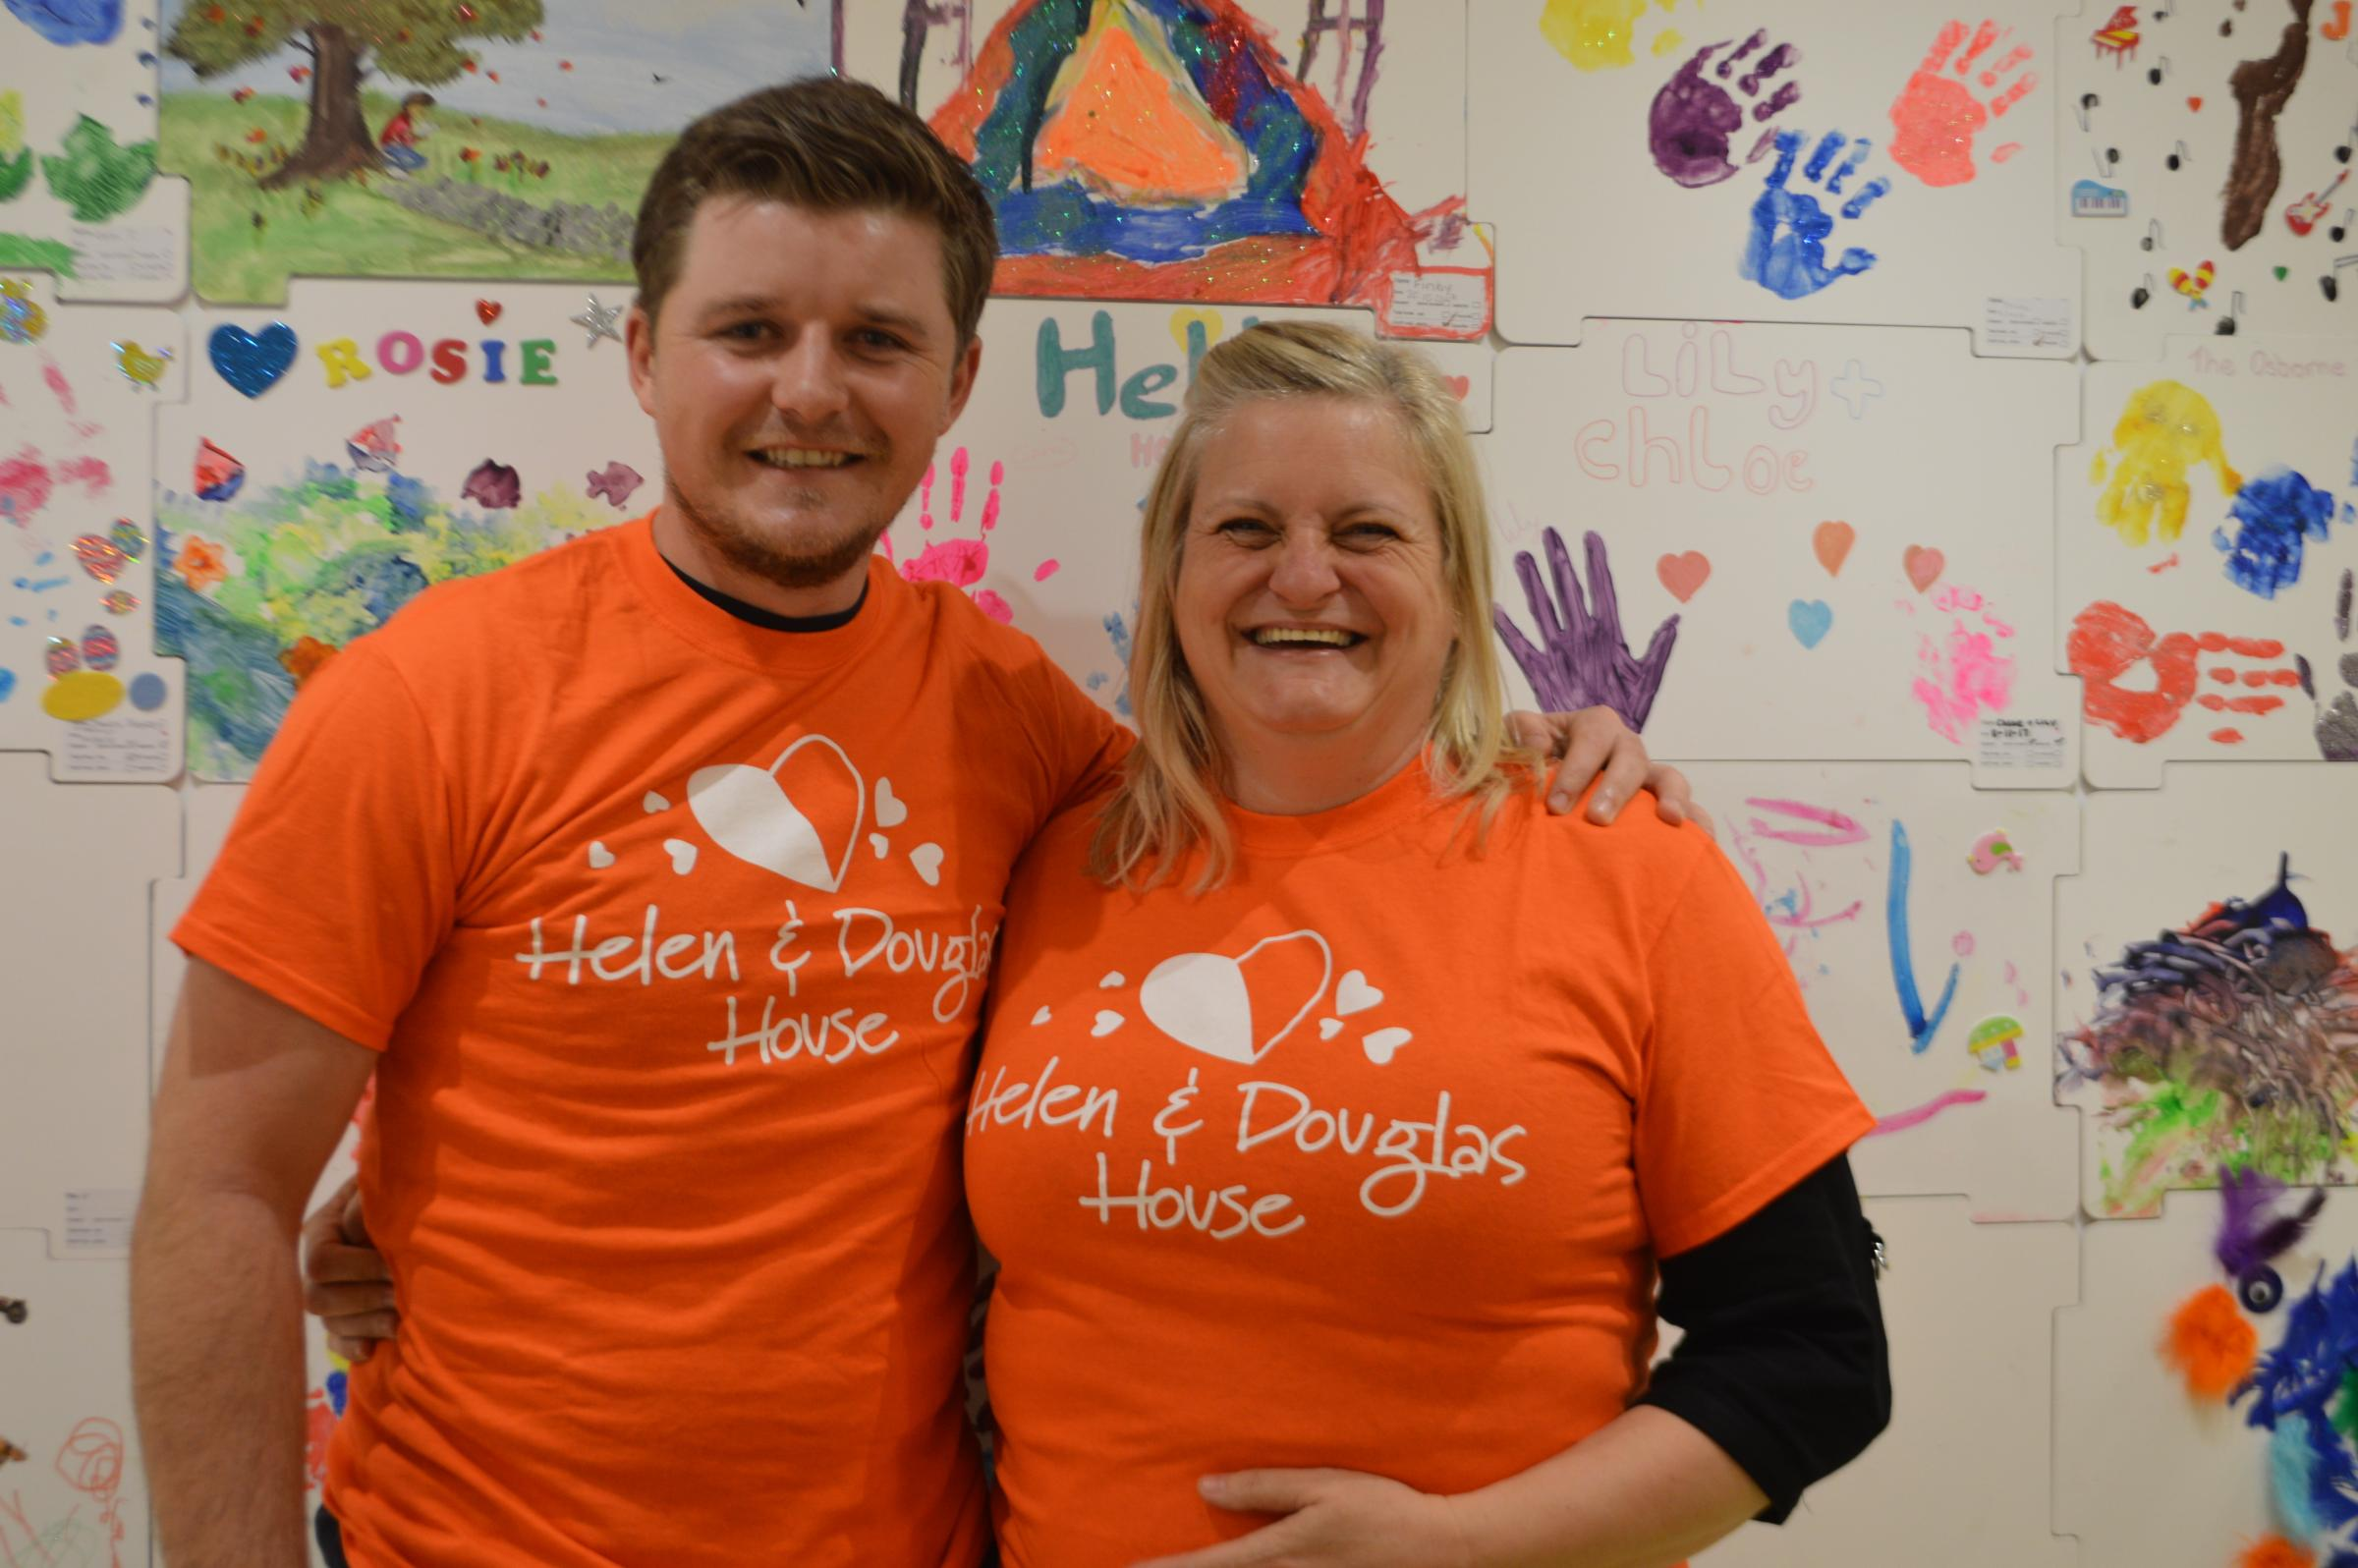 Eddie Pepperell with Alison Stone at Helen & Douglas House,